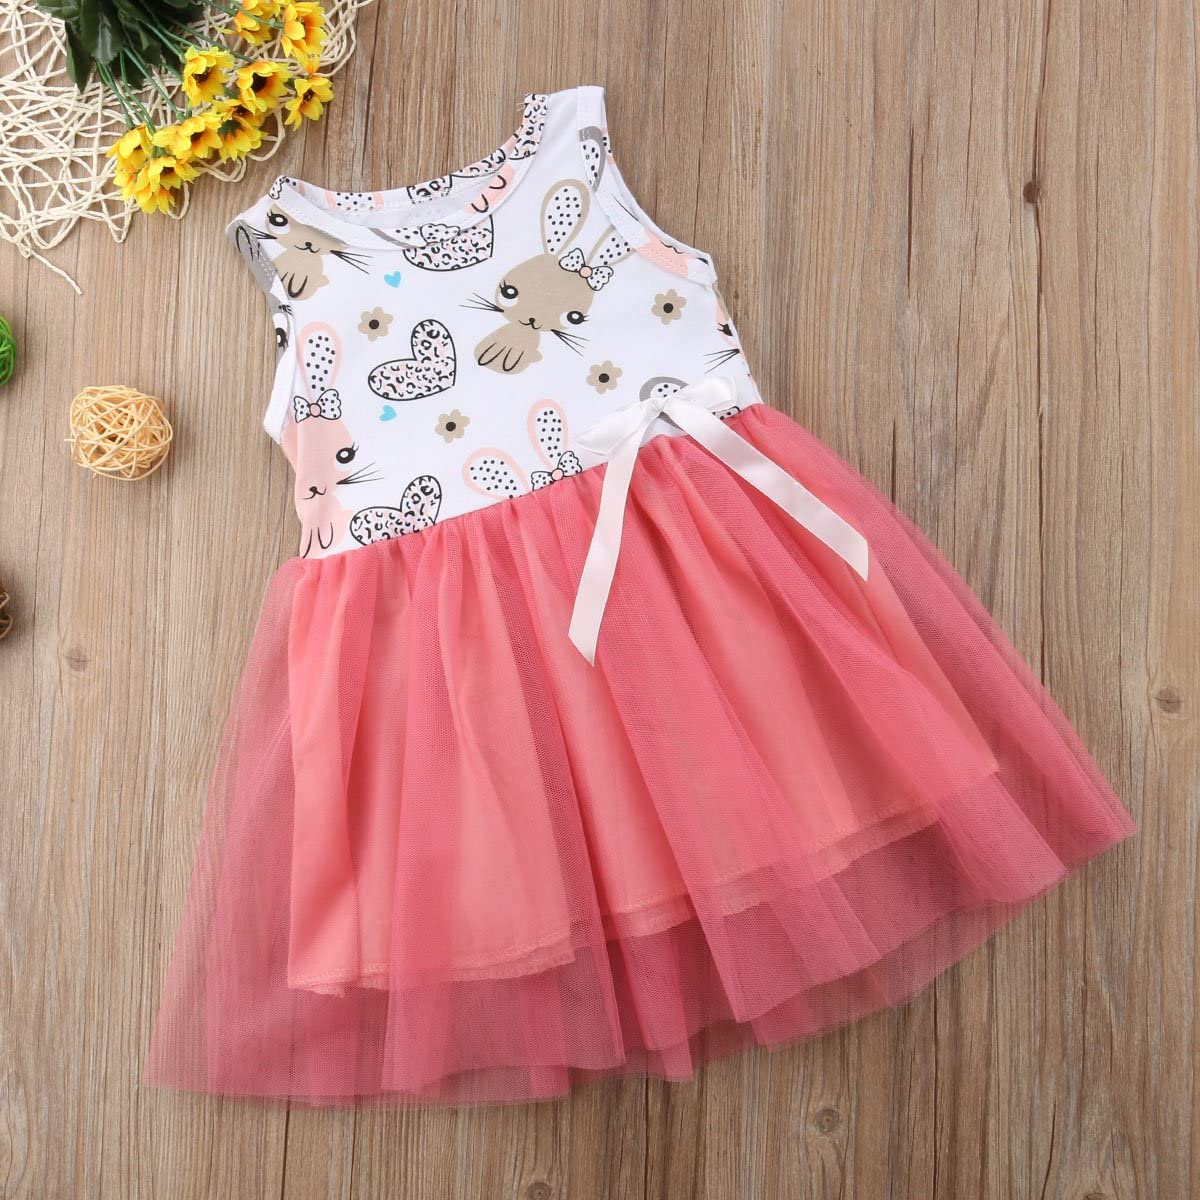 Muasaaluxi Infant Kid Baby Girls Easter Outfit Bunny Dress Sleeveless Princess Tutu Dress Sundress Summer Clothes 6M-3Y